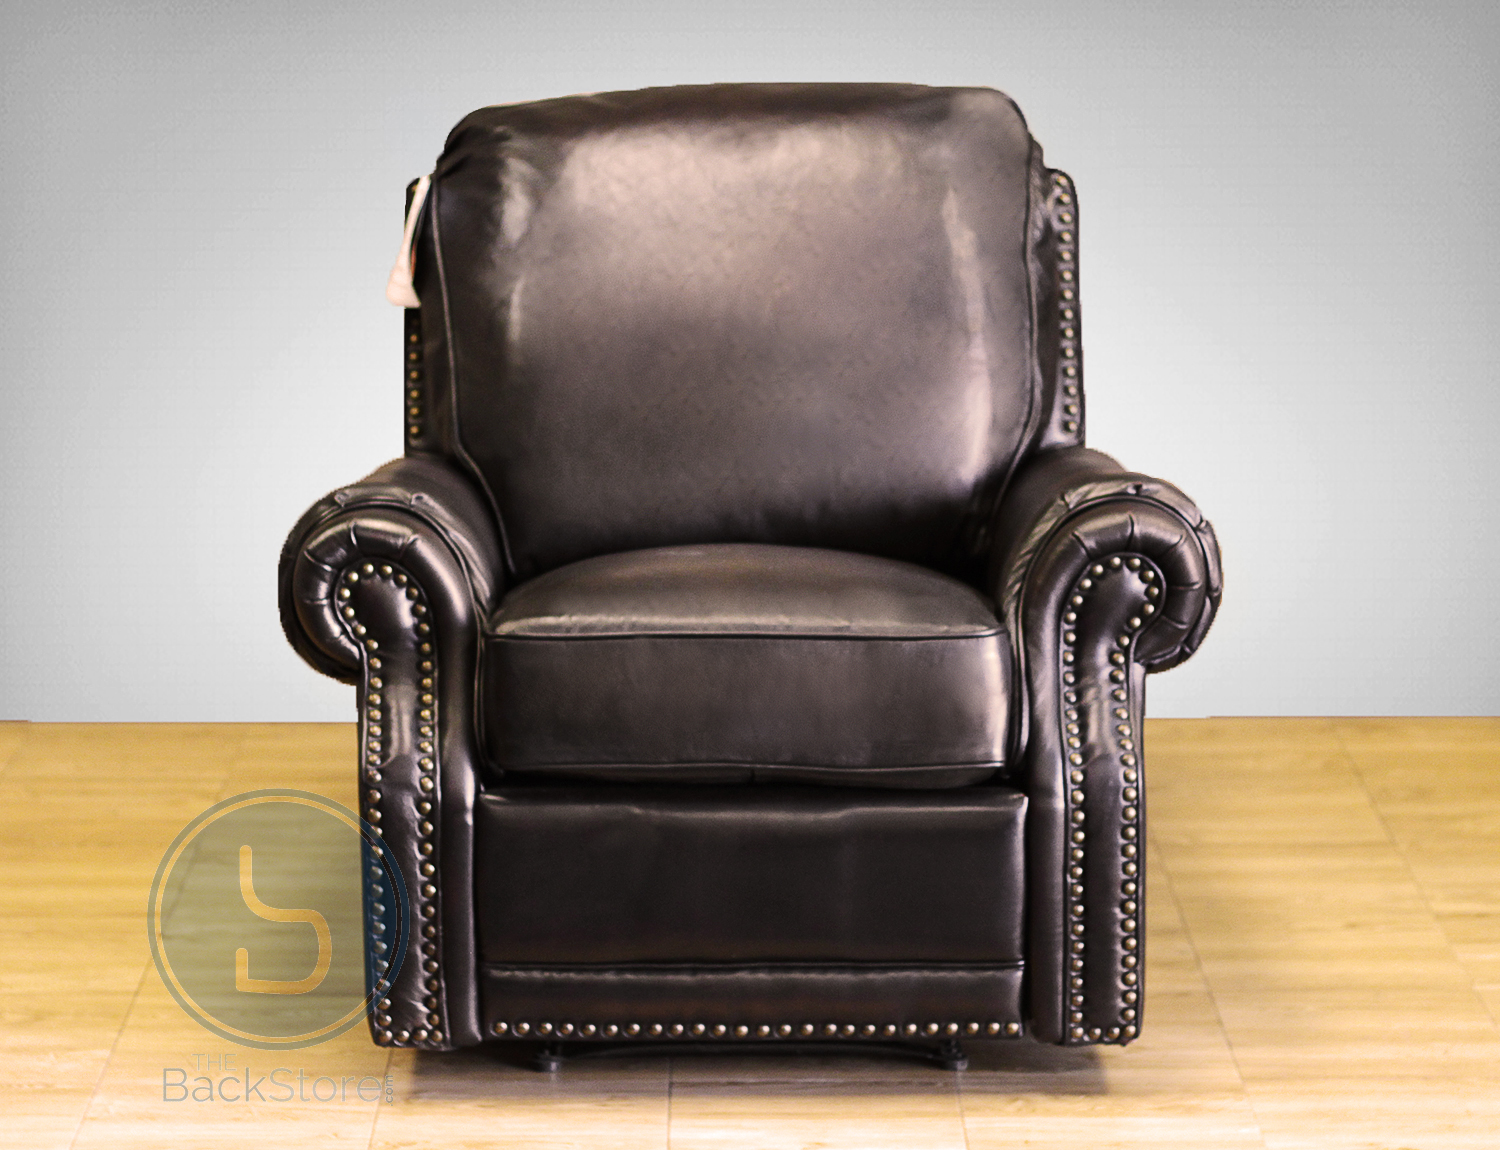 Barcalounger Premier II Recliner Chair Front & Barcalounger Premier II Leather Recliner Chair - Leather Recliner ... islam-shia.org